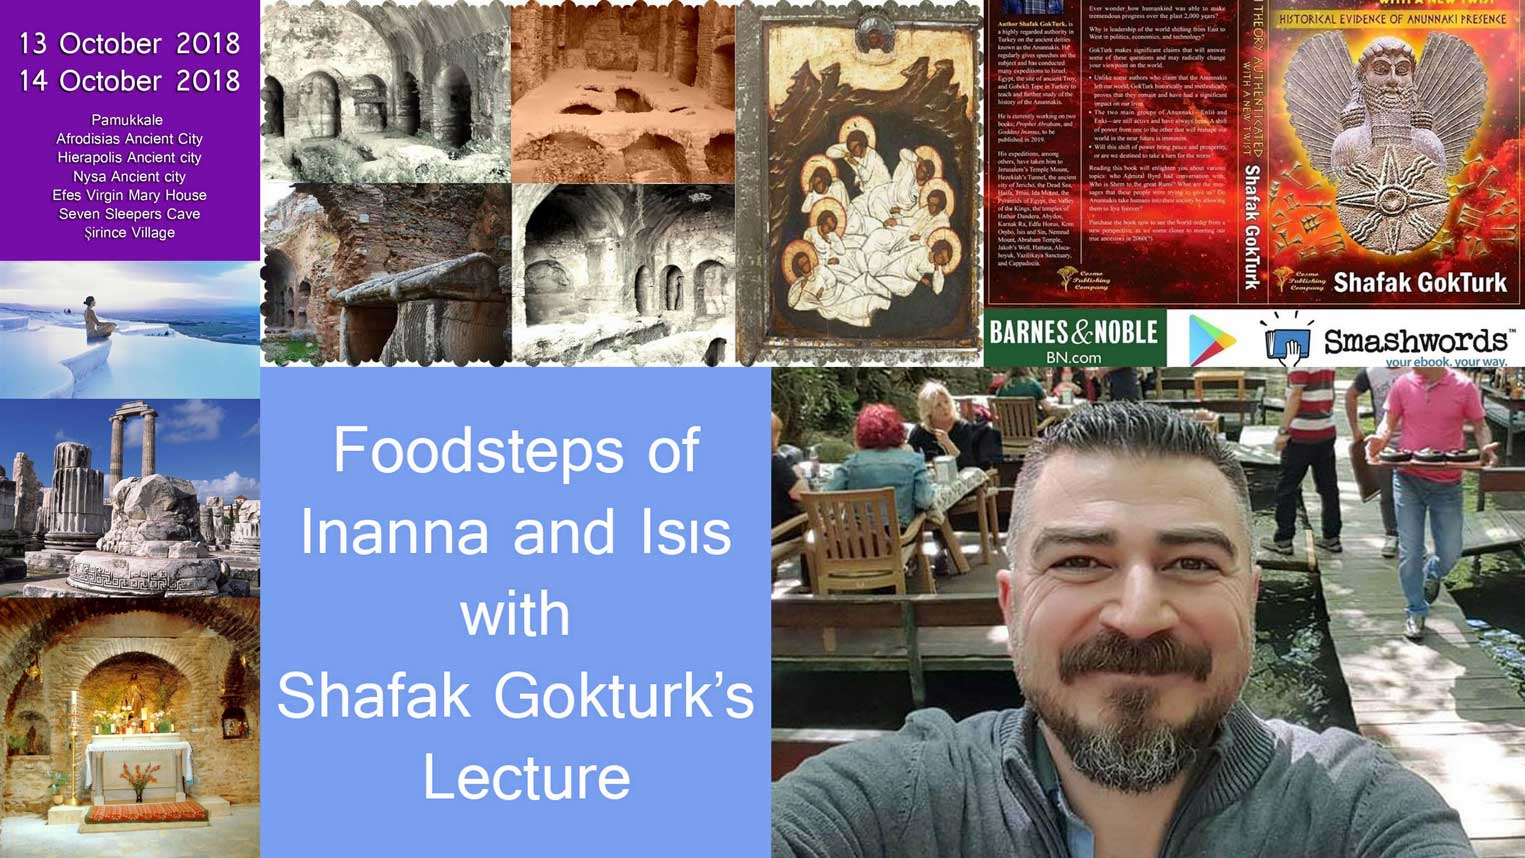 Foodsteps of Inanna and Isıs with Shafak Gokturk's Lecture